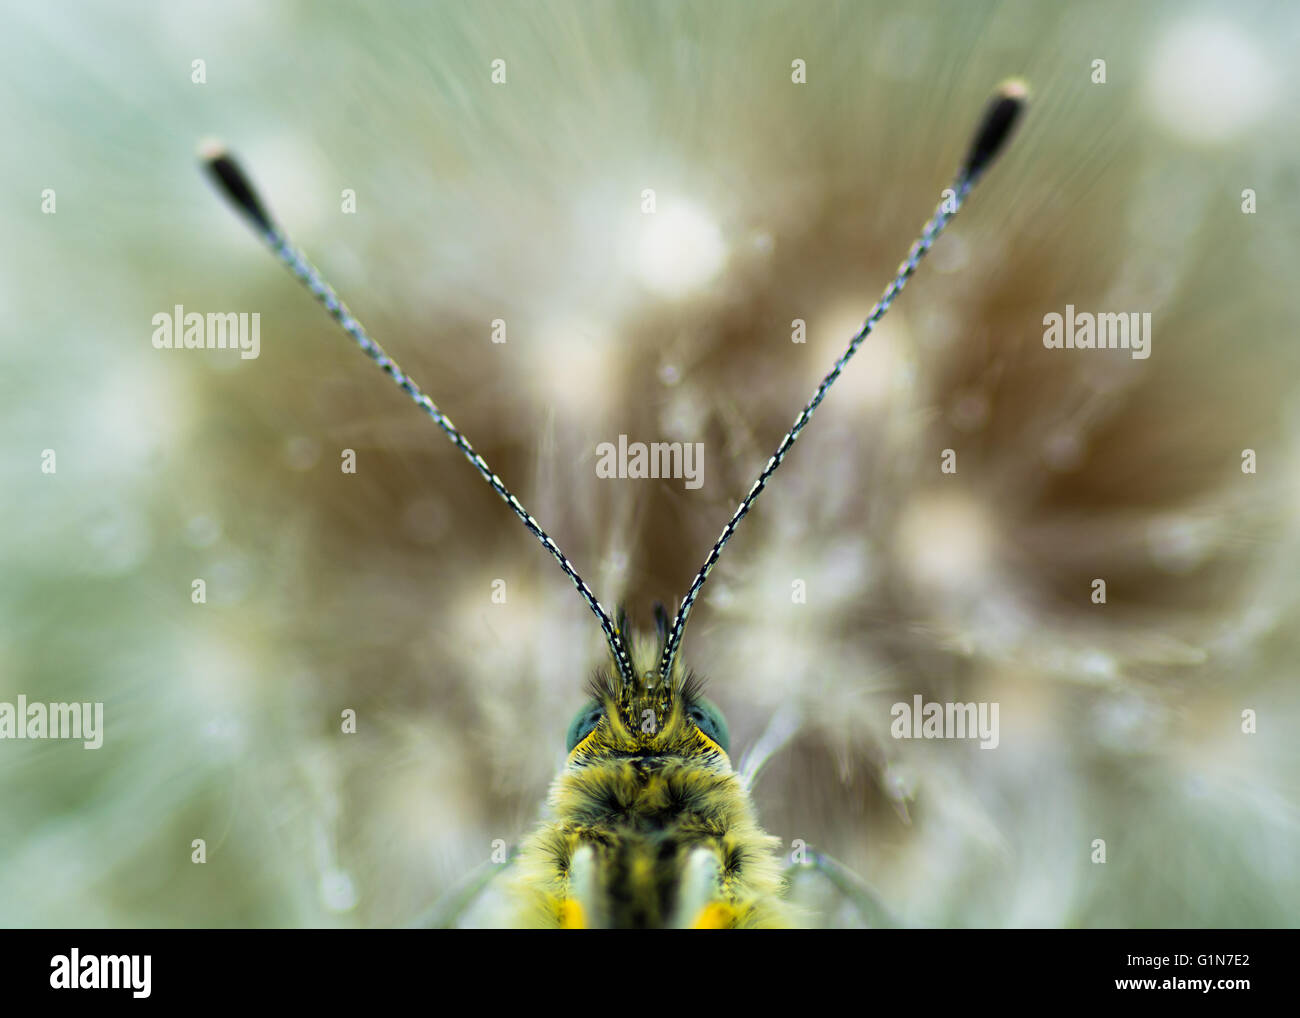 Green-veined white head (Pieris napi) on dandelion seedhead. Close up of head of butterfly in the family Pieridae - Stock Image